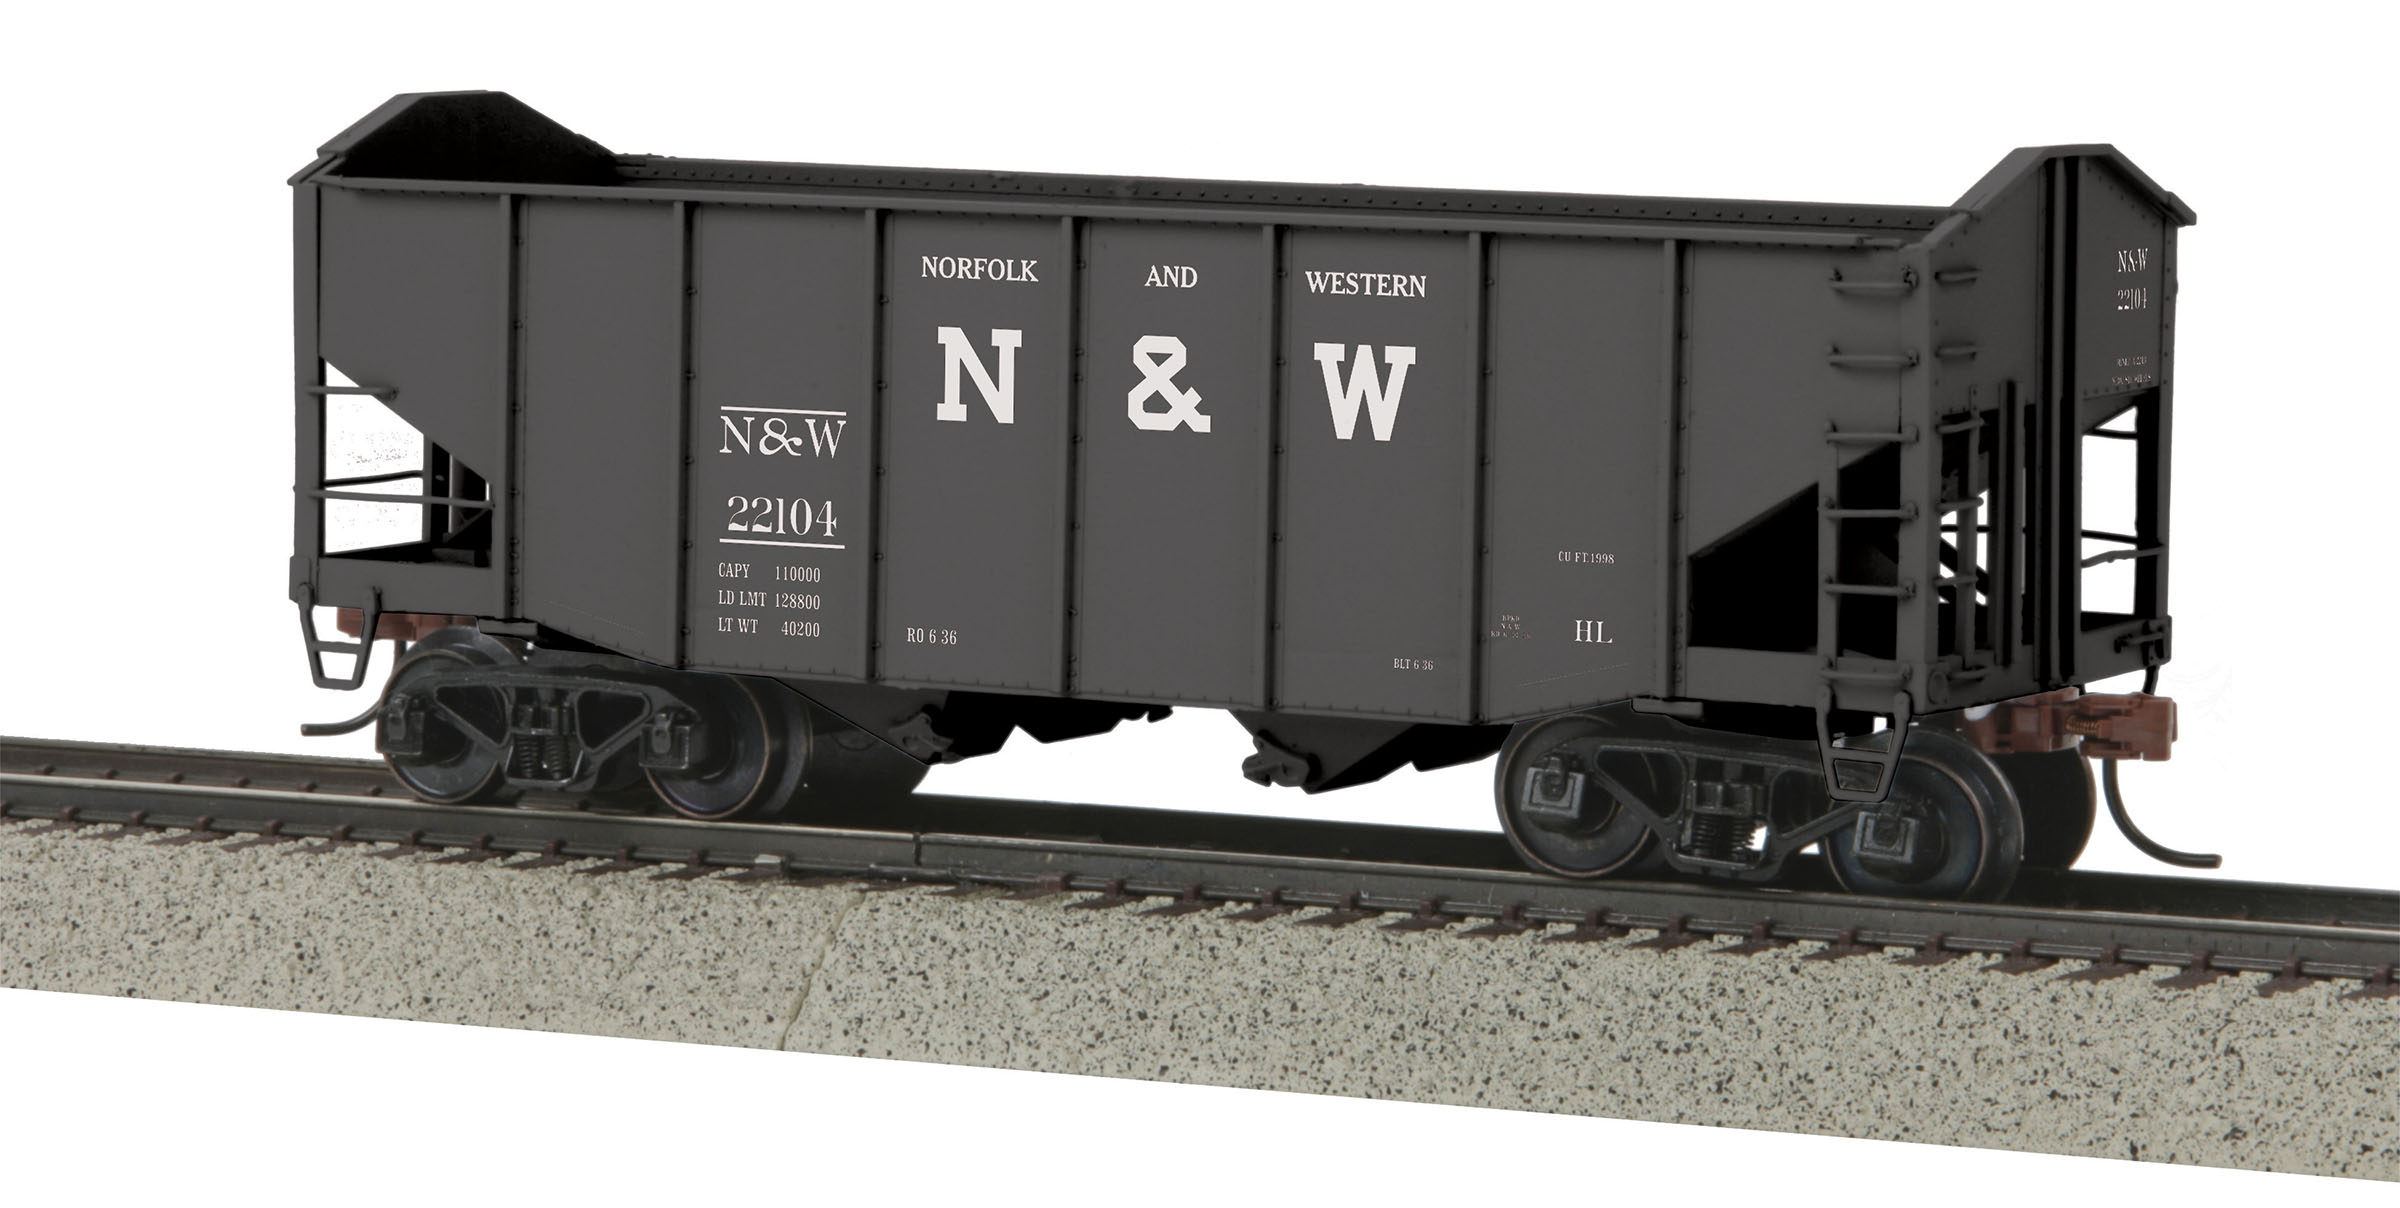 MTH 3575054 2Bay Fish Belly Hopper Hi-Rail Wheel N&W #22104